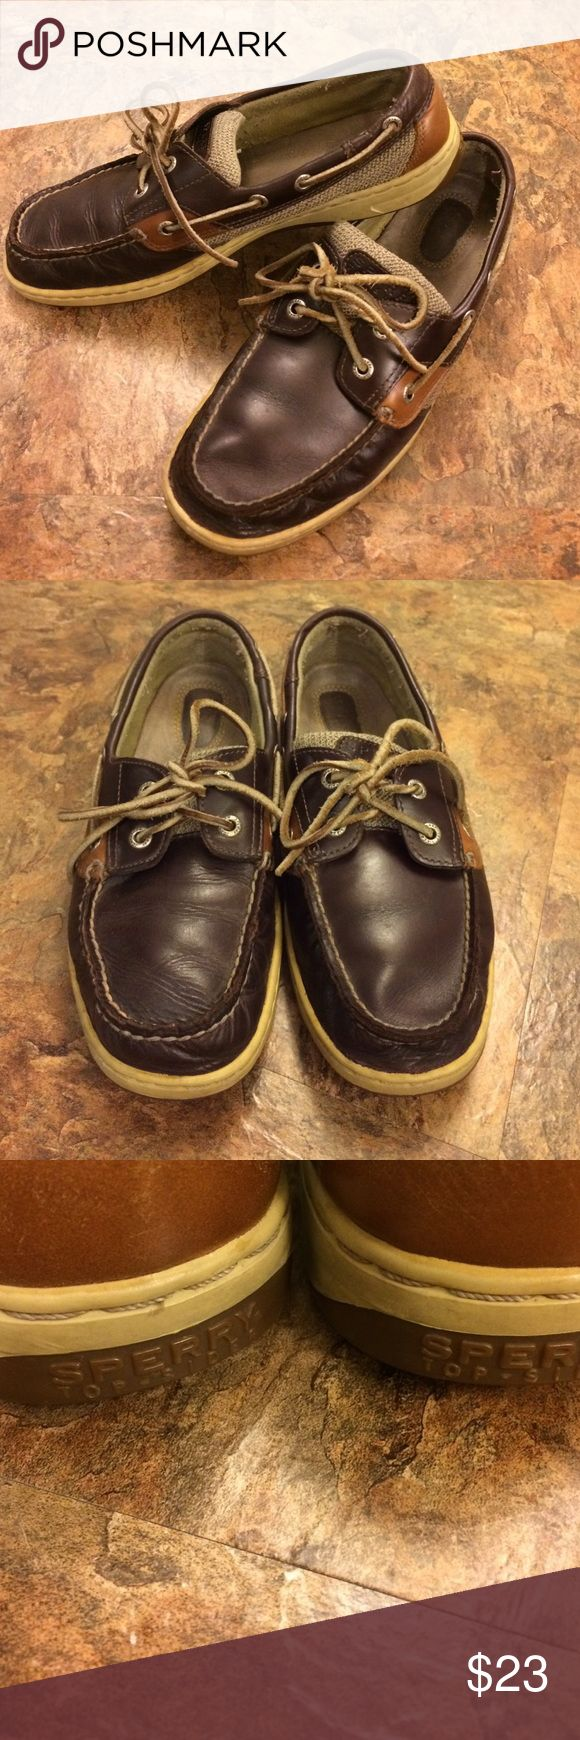 Leather Sperry Topsiders size 9 ladies Leather Sperry Topsiders size 9 great condition! Sperry Top-Sider Shoes Flats & Loafers